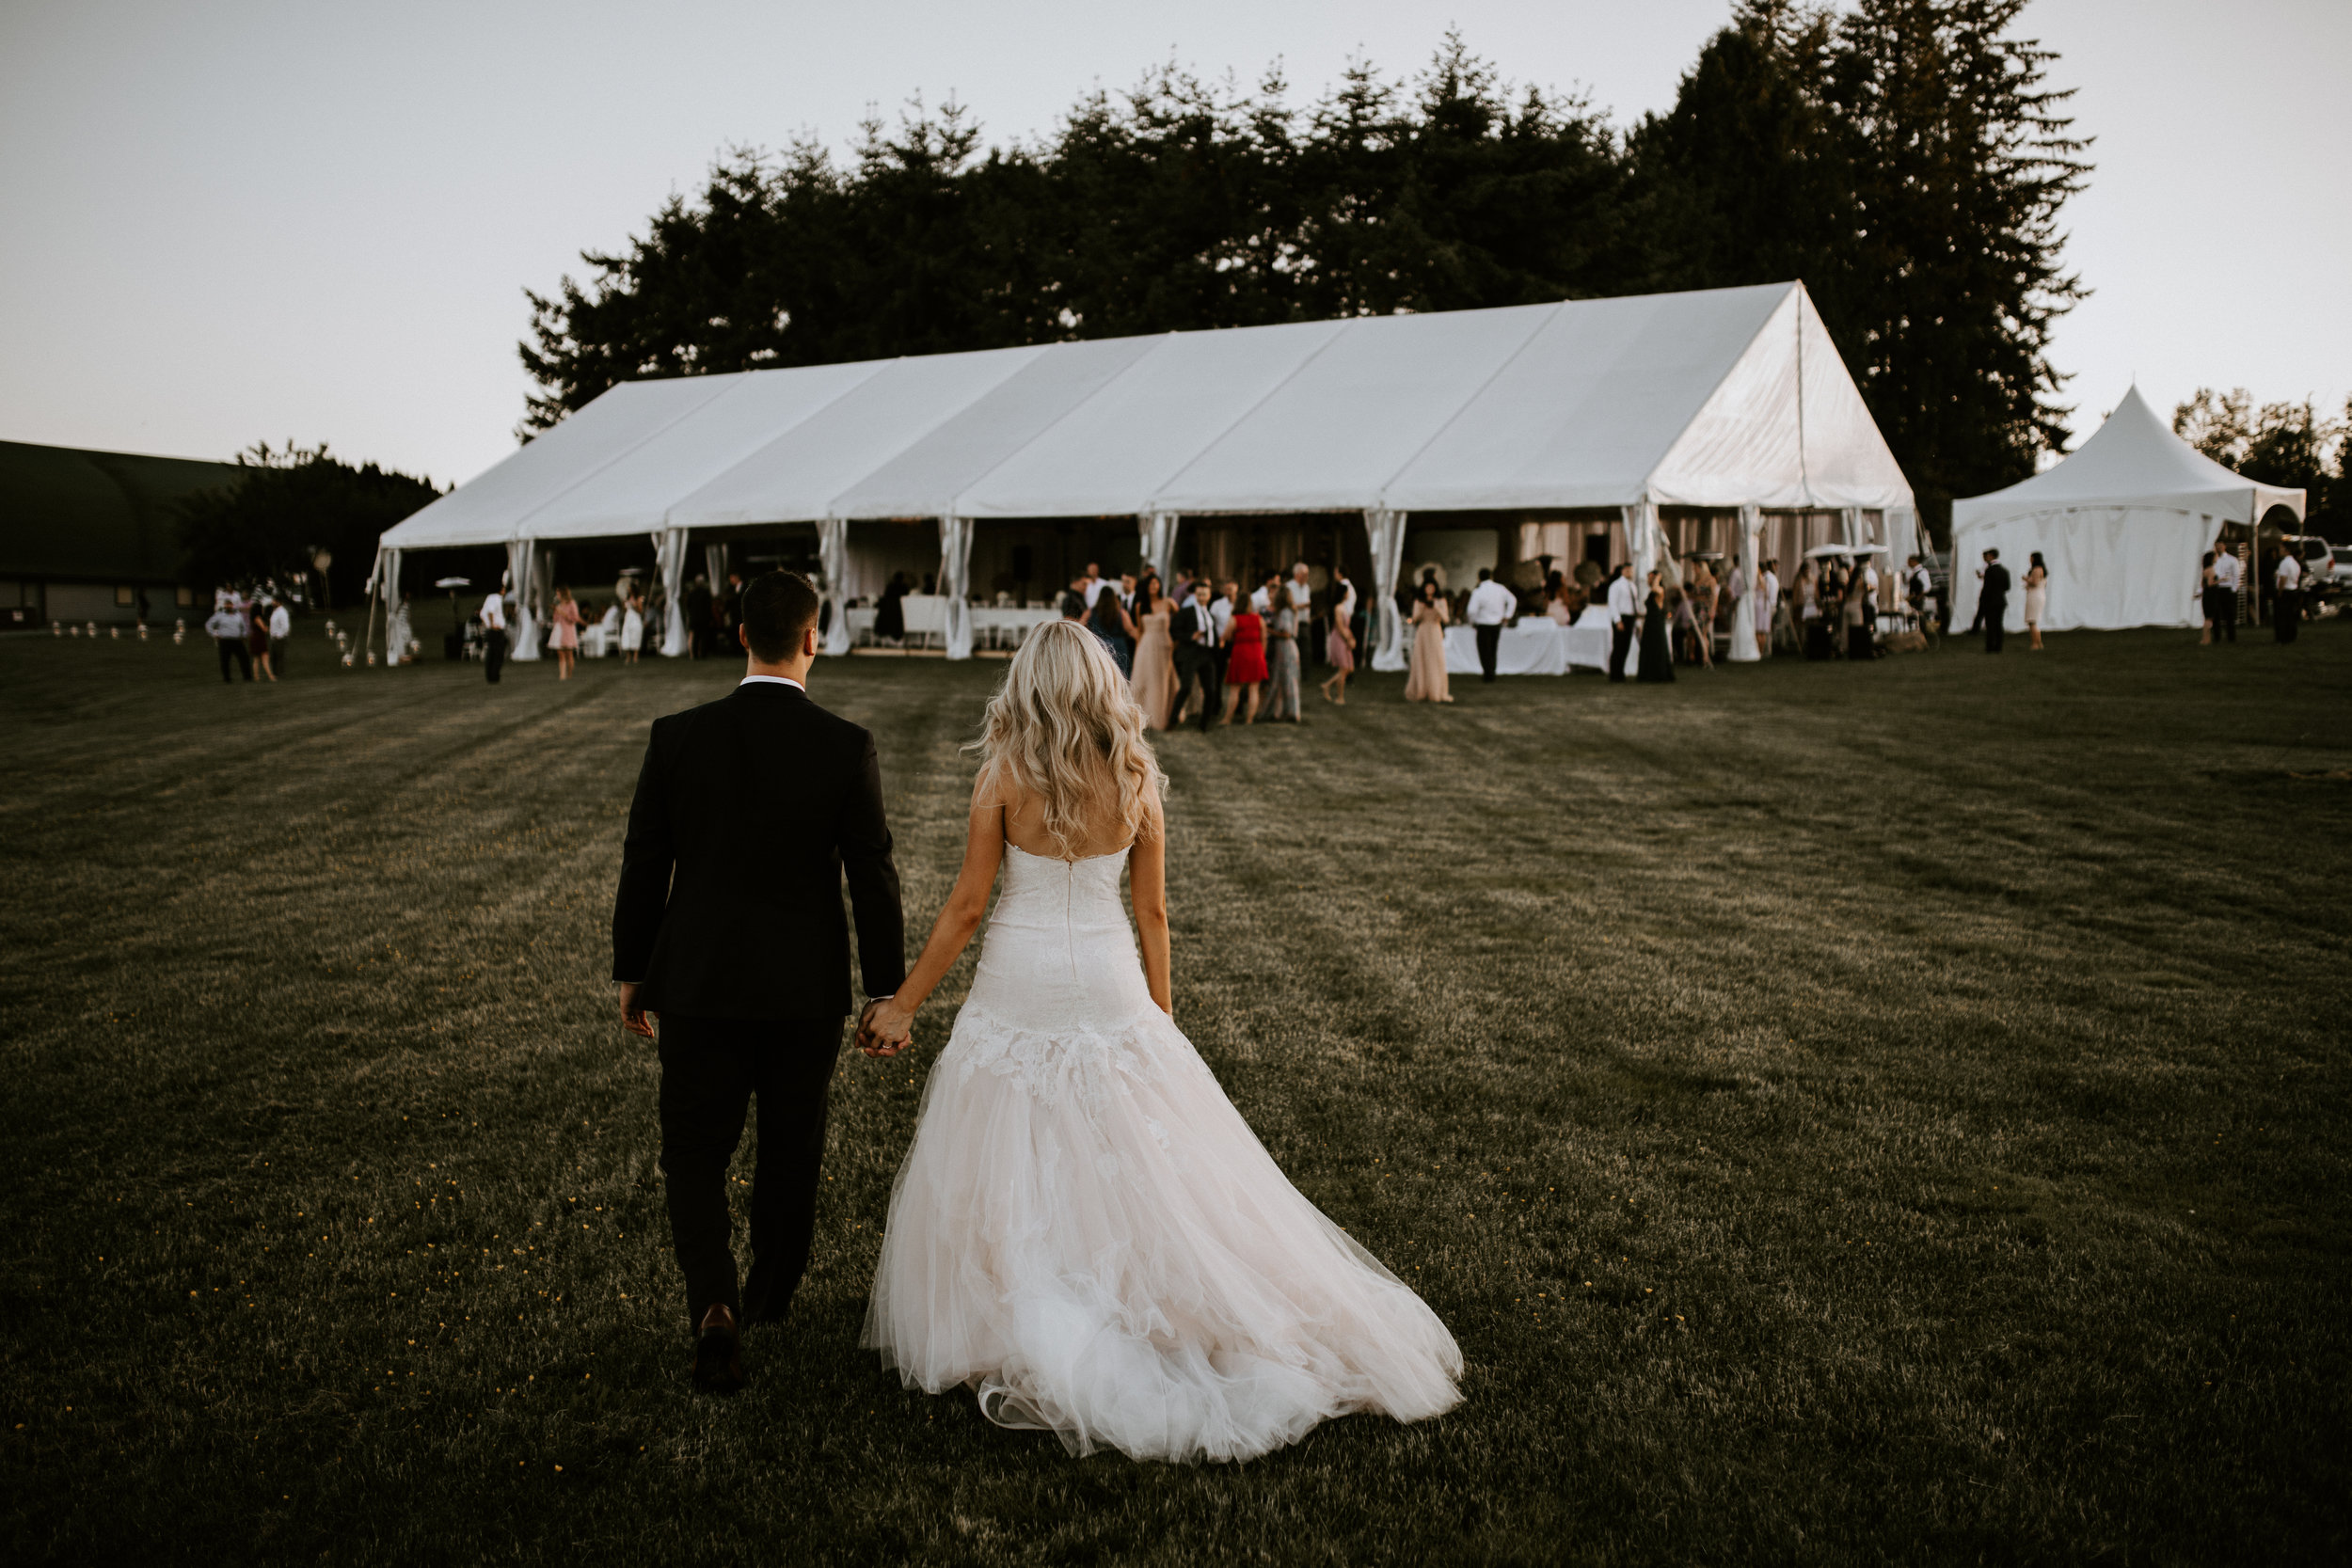 Bride and Groom entering their wedding reception at Mount Lehman Winery in Abbotsford